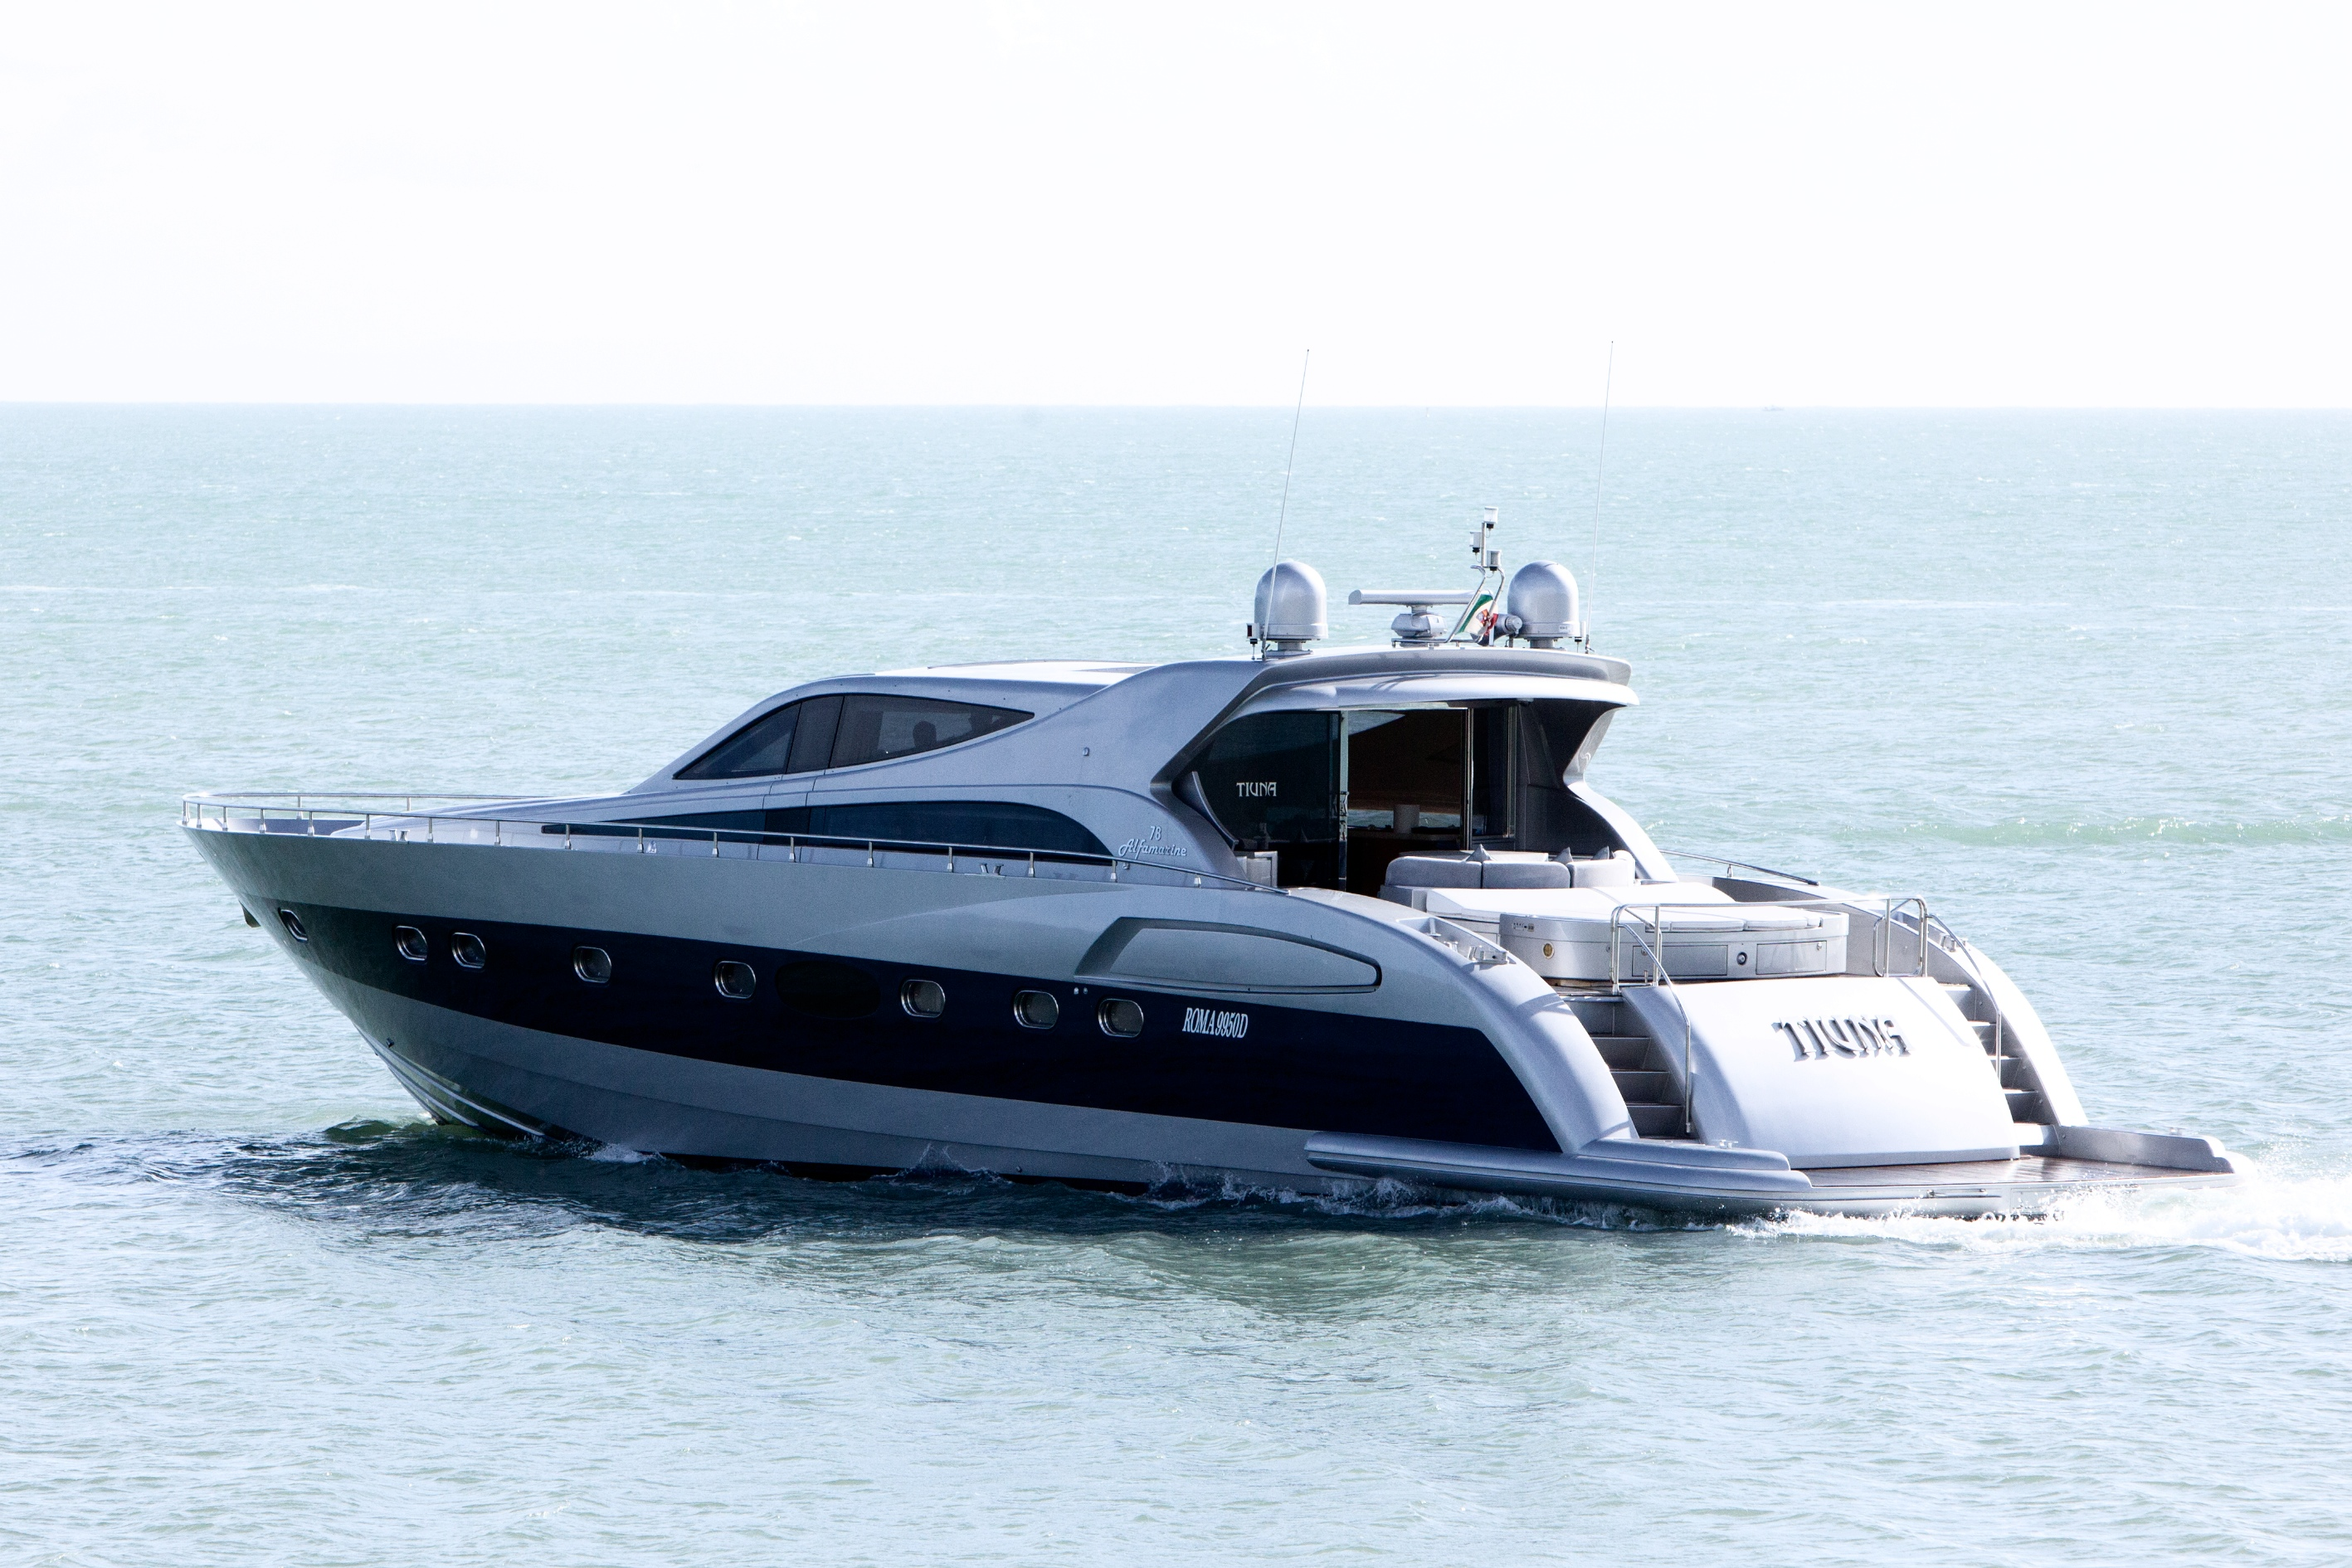 Morning Tour with Luxury Yacht